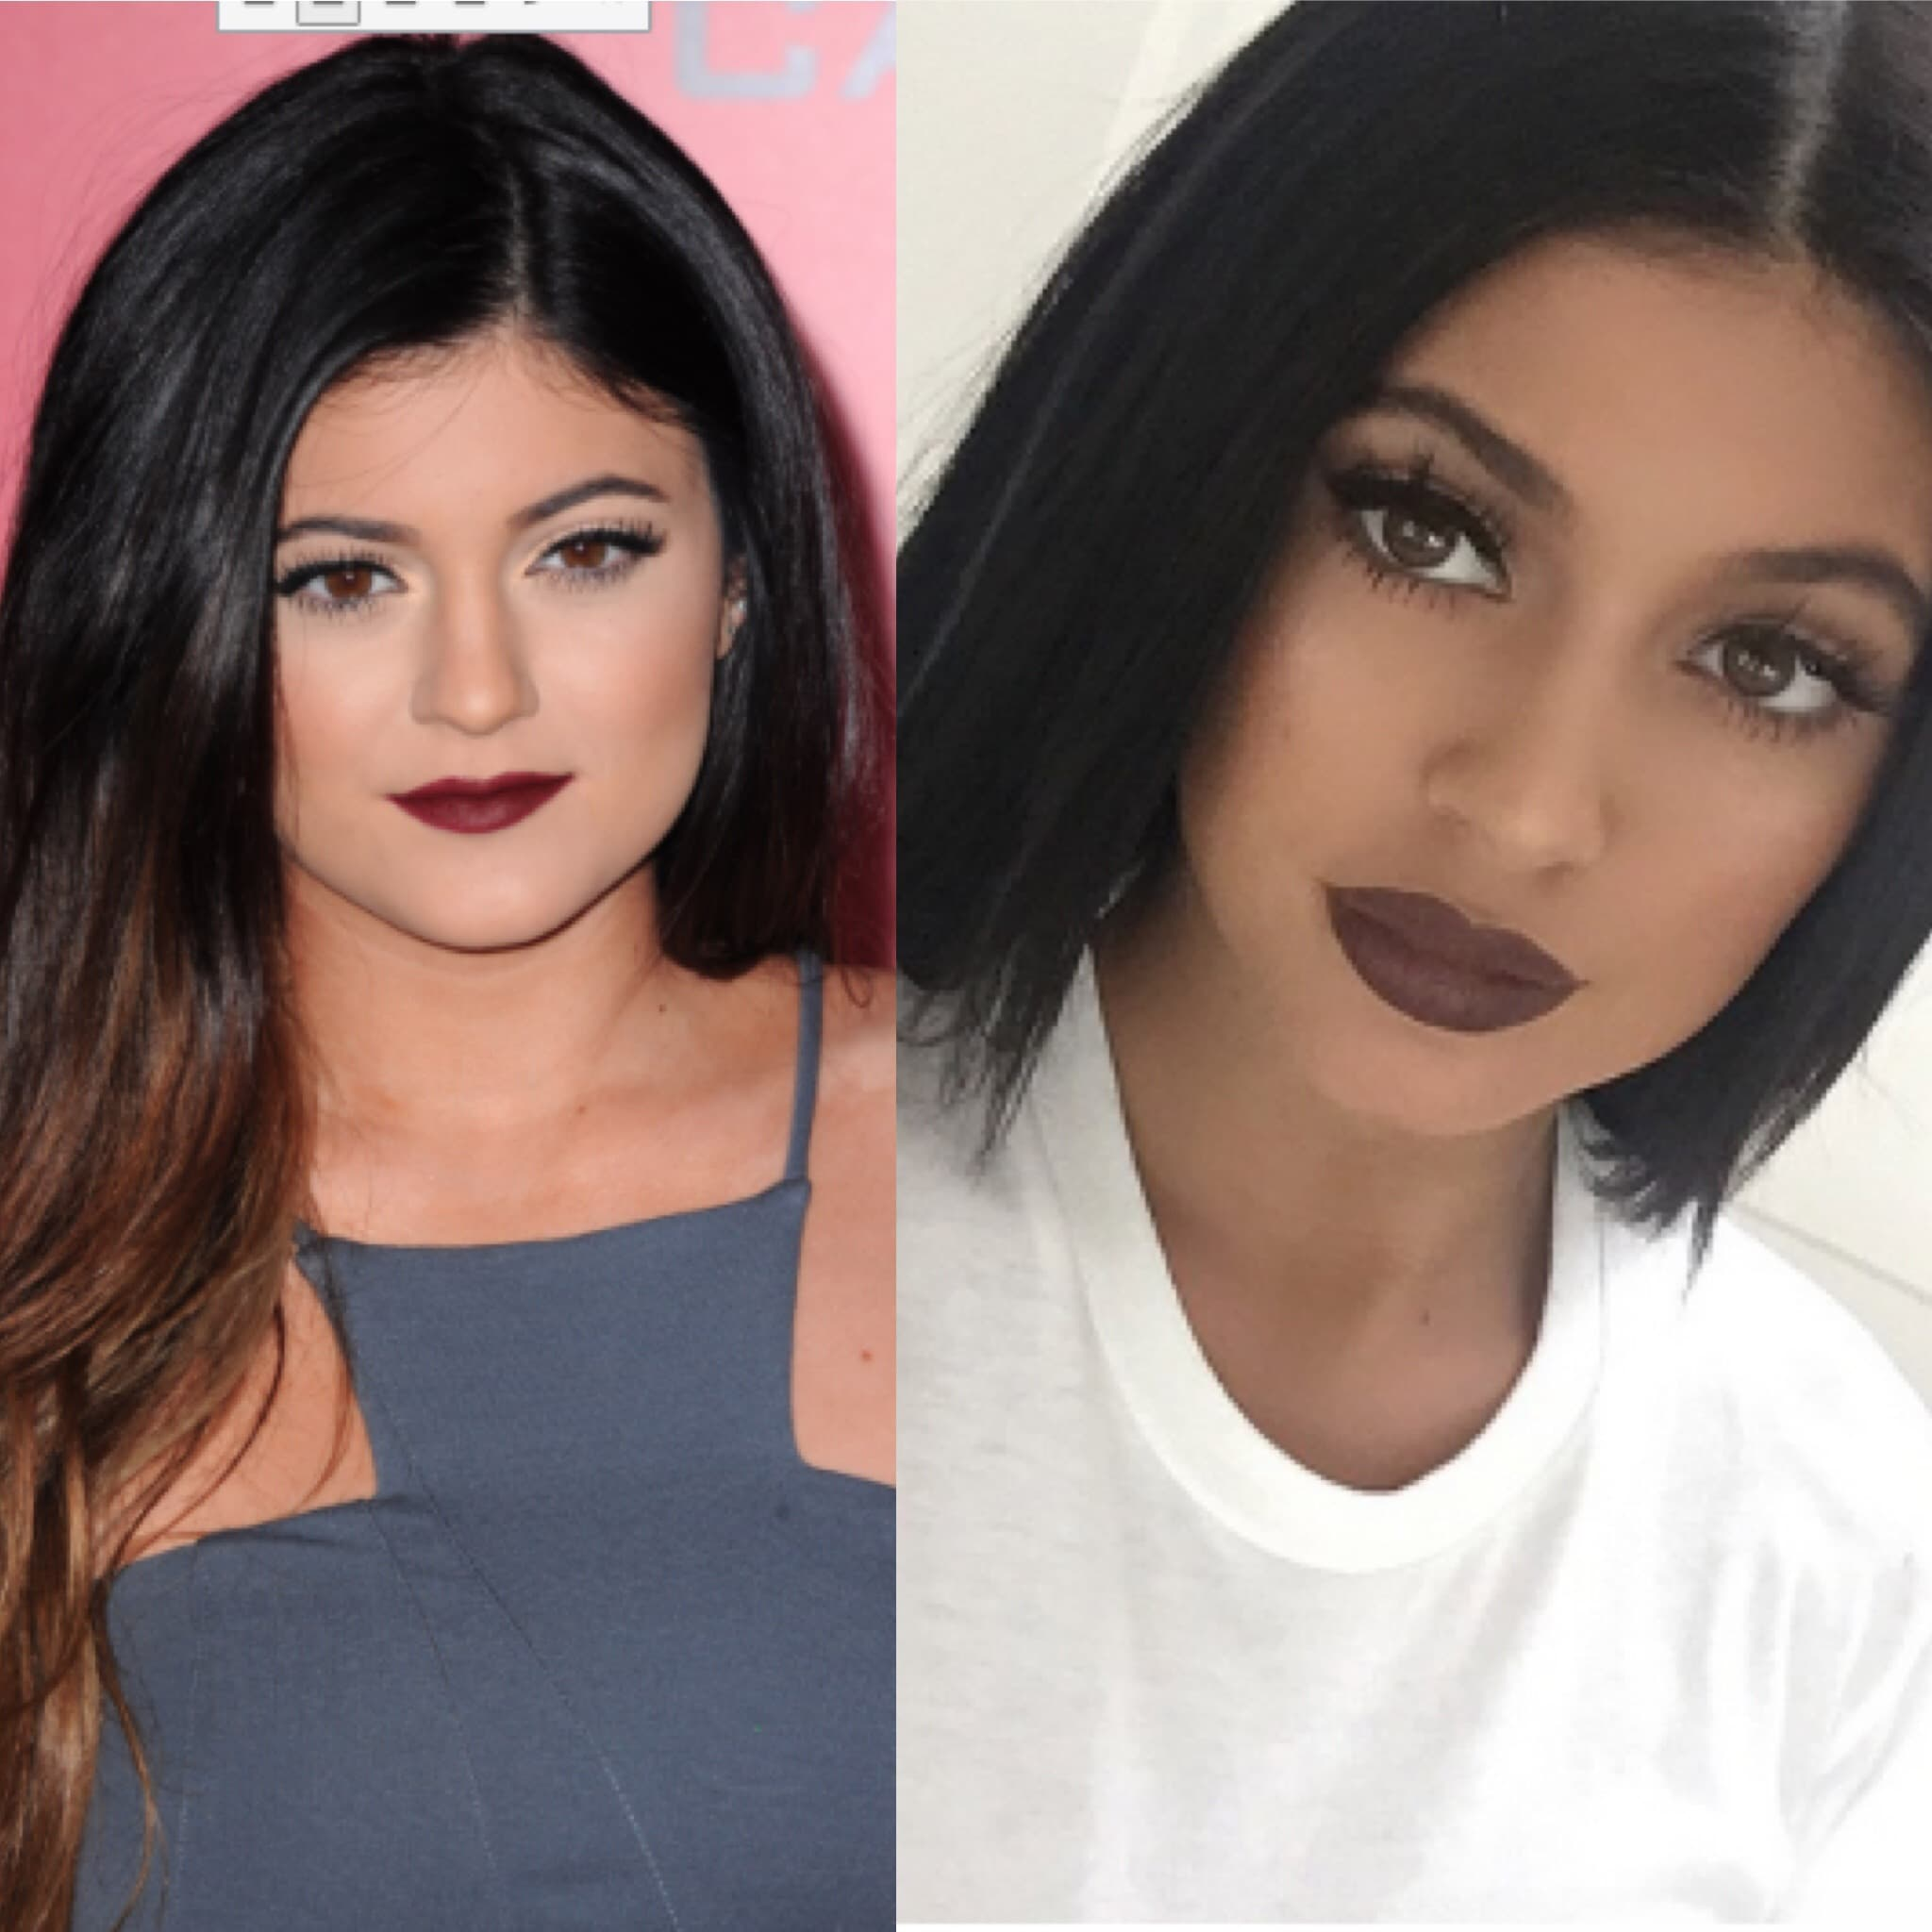 Kylie Jenner Lips Before And After Plastic Surgery 1